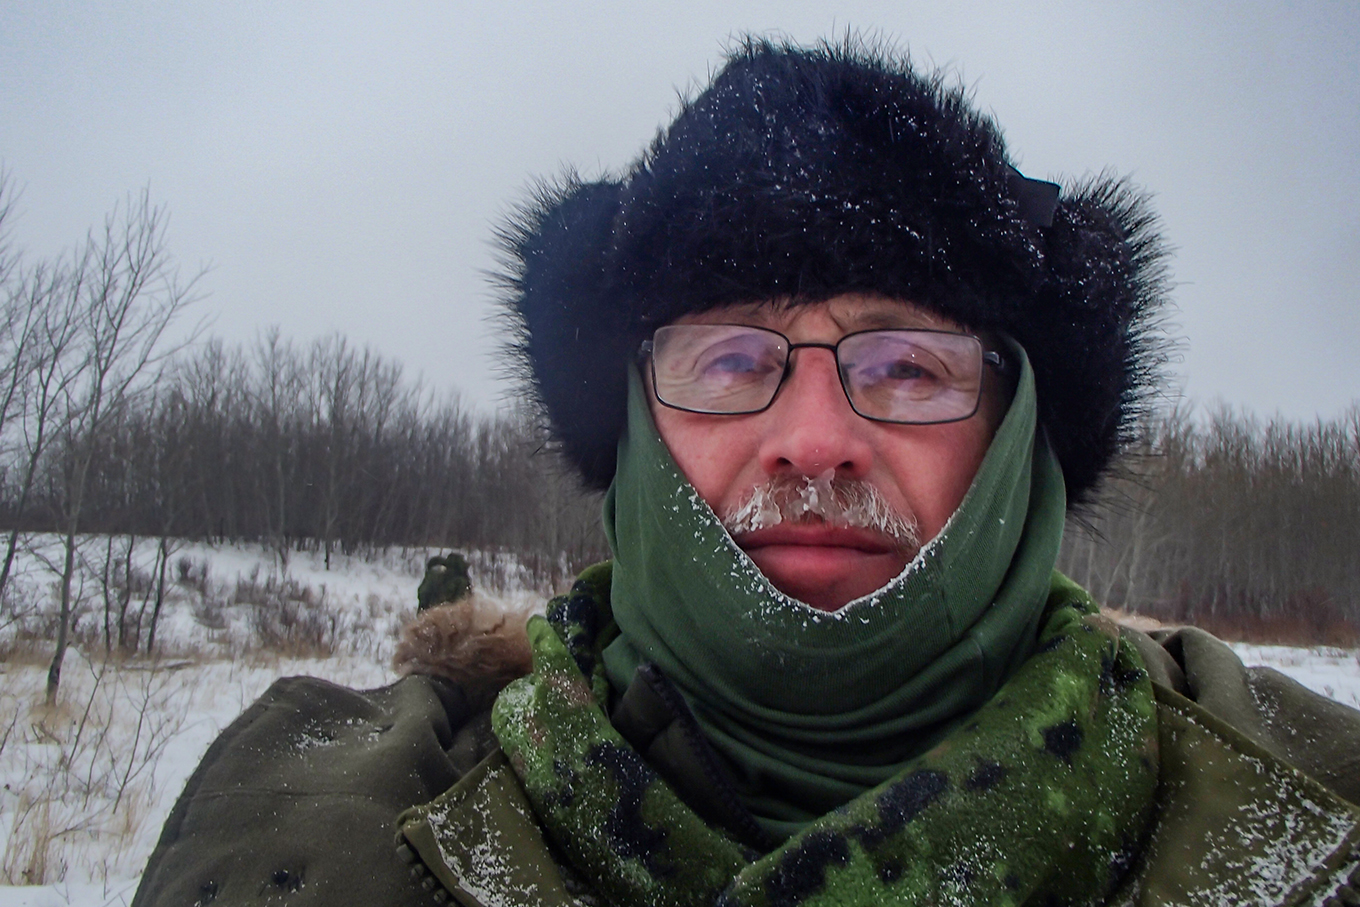 Man wearing frosty winter clothing in Canadian snow conditions.